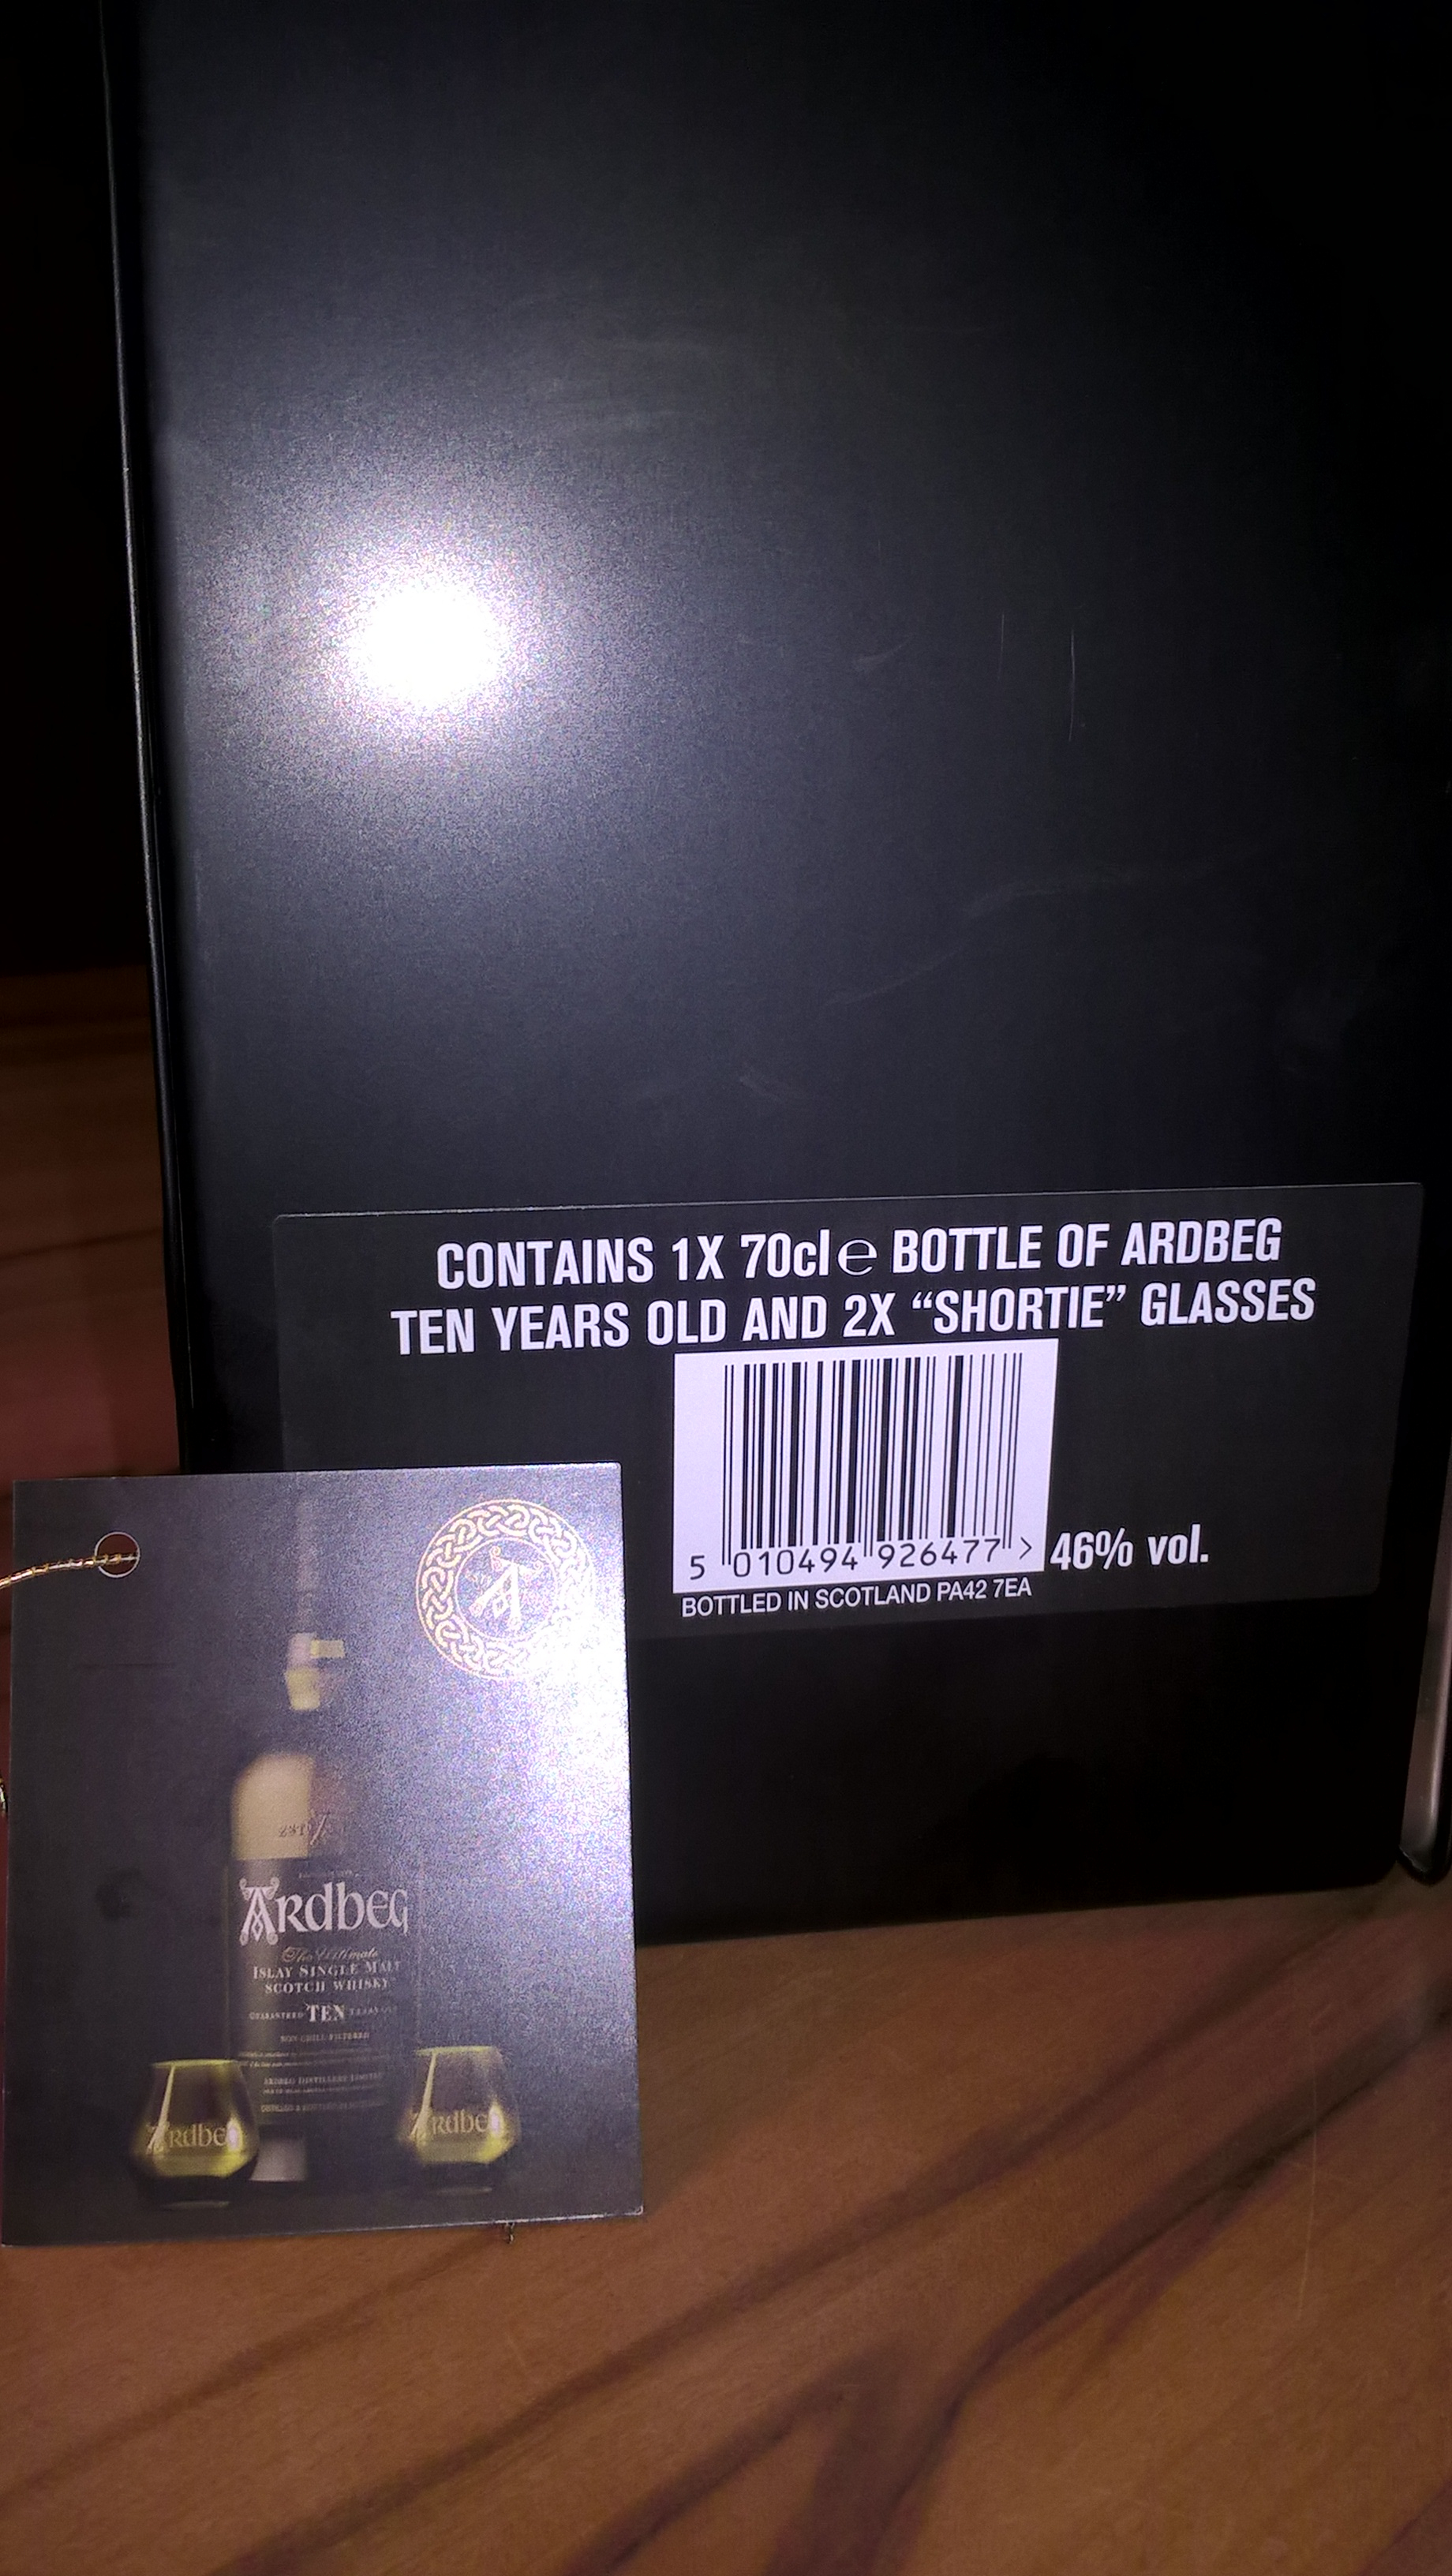 Ardbeg TEN Quadrant slowdrink.de limited